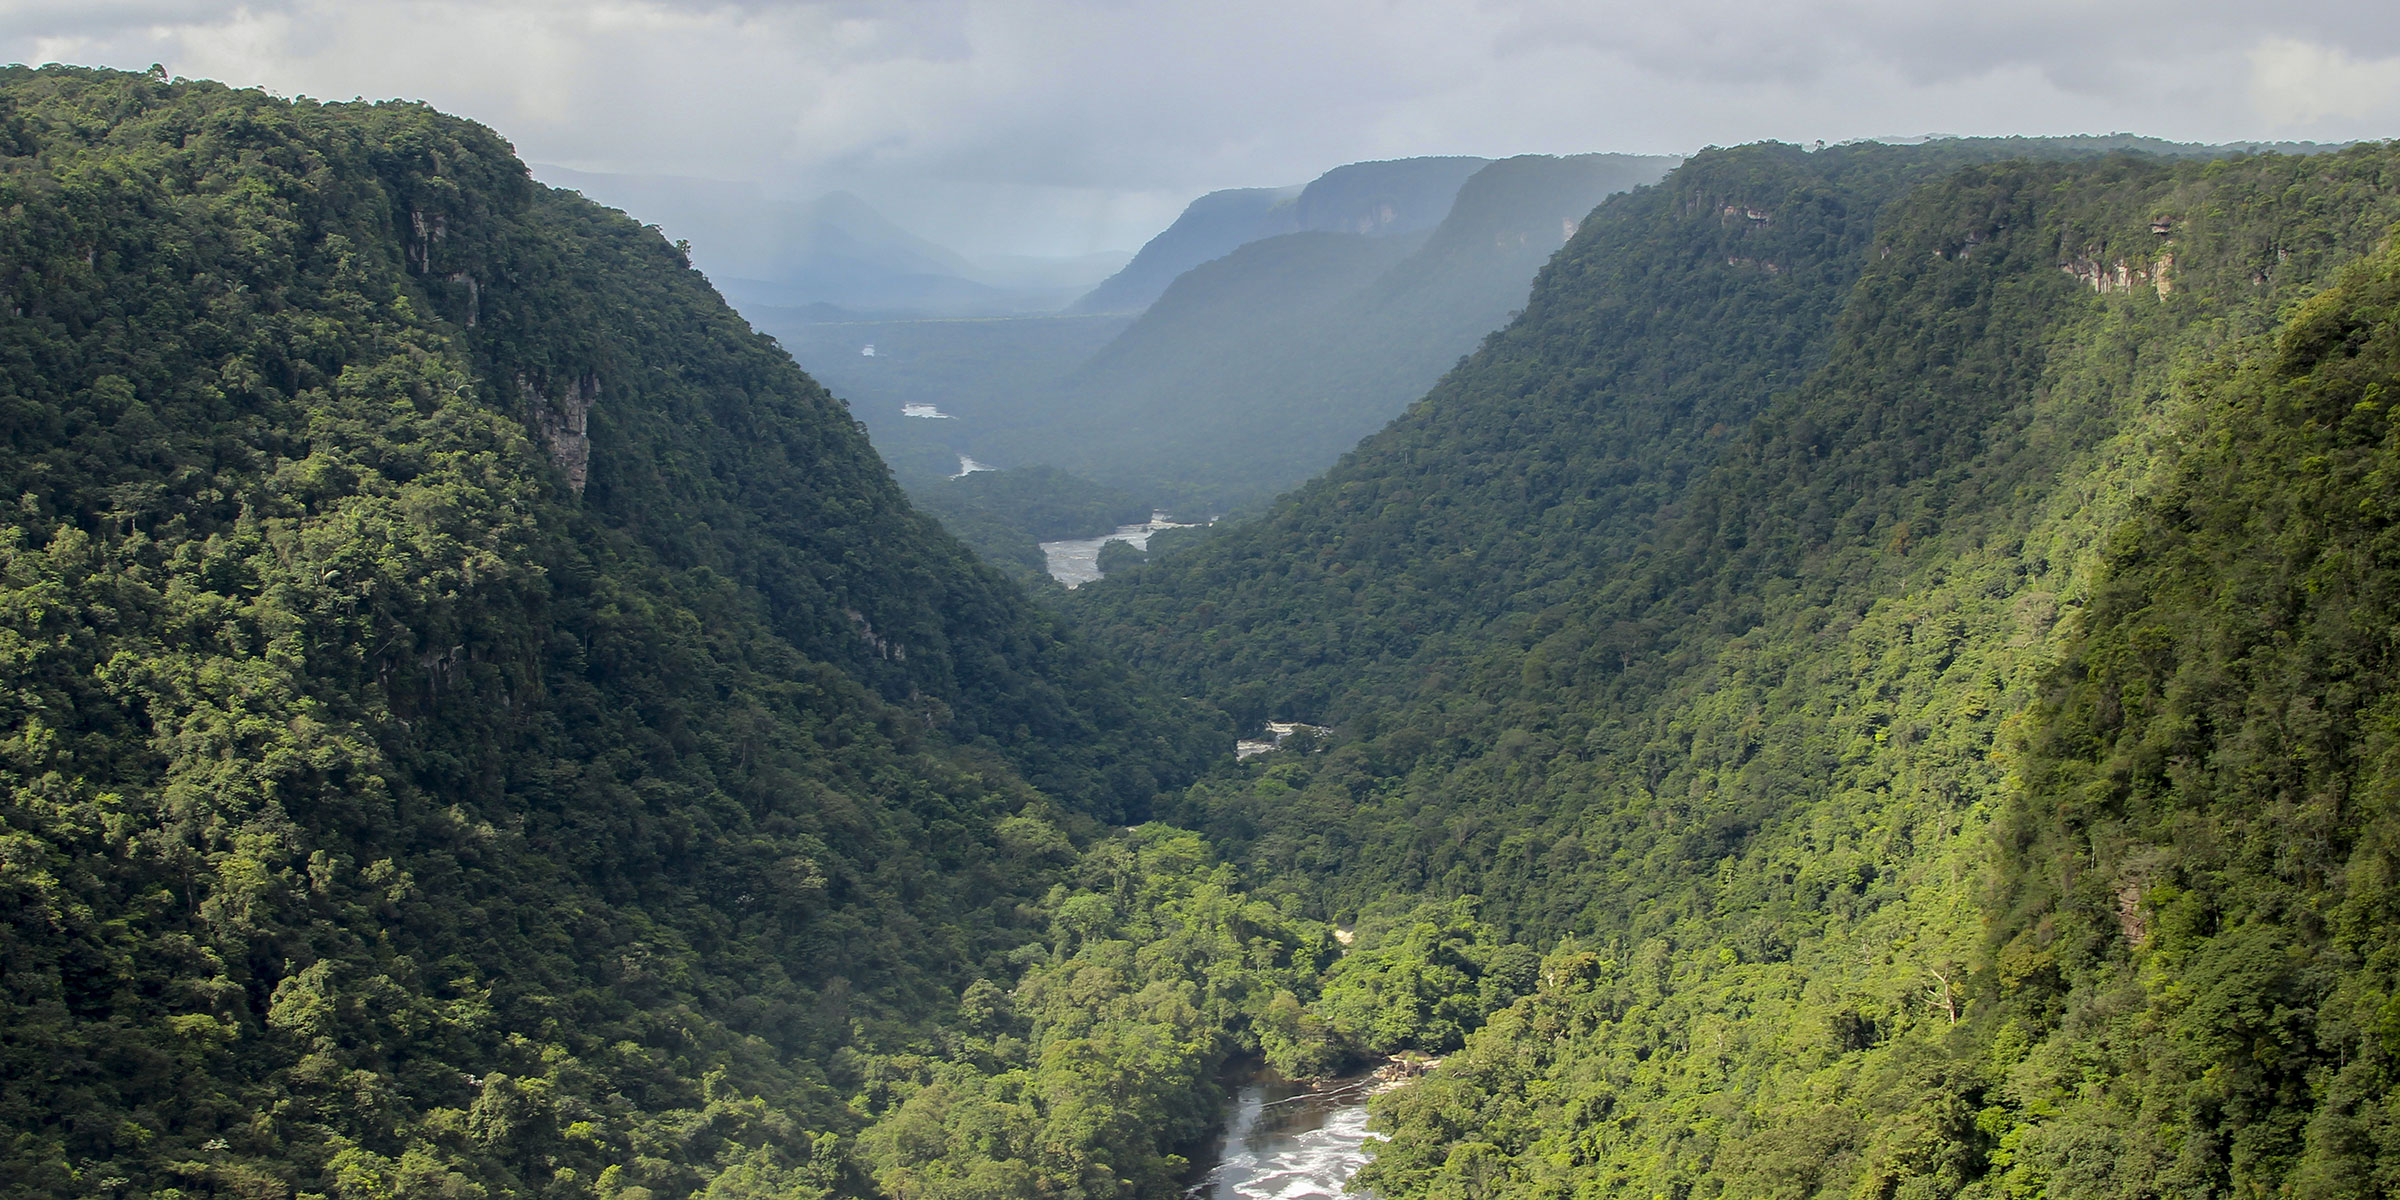 The Potaro River flows between table-top mountains in Kaieteur national park, Guyana